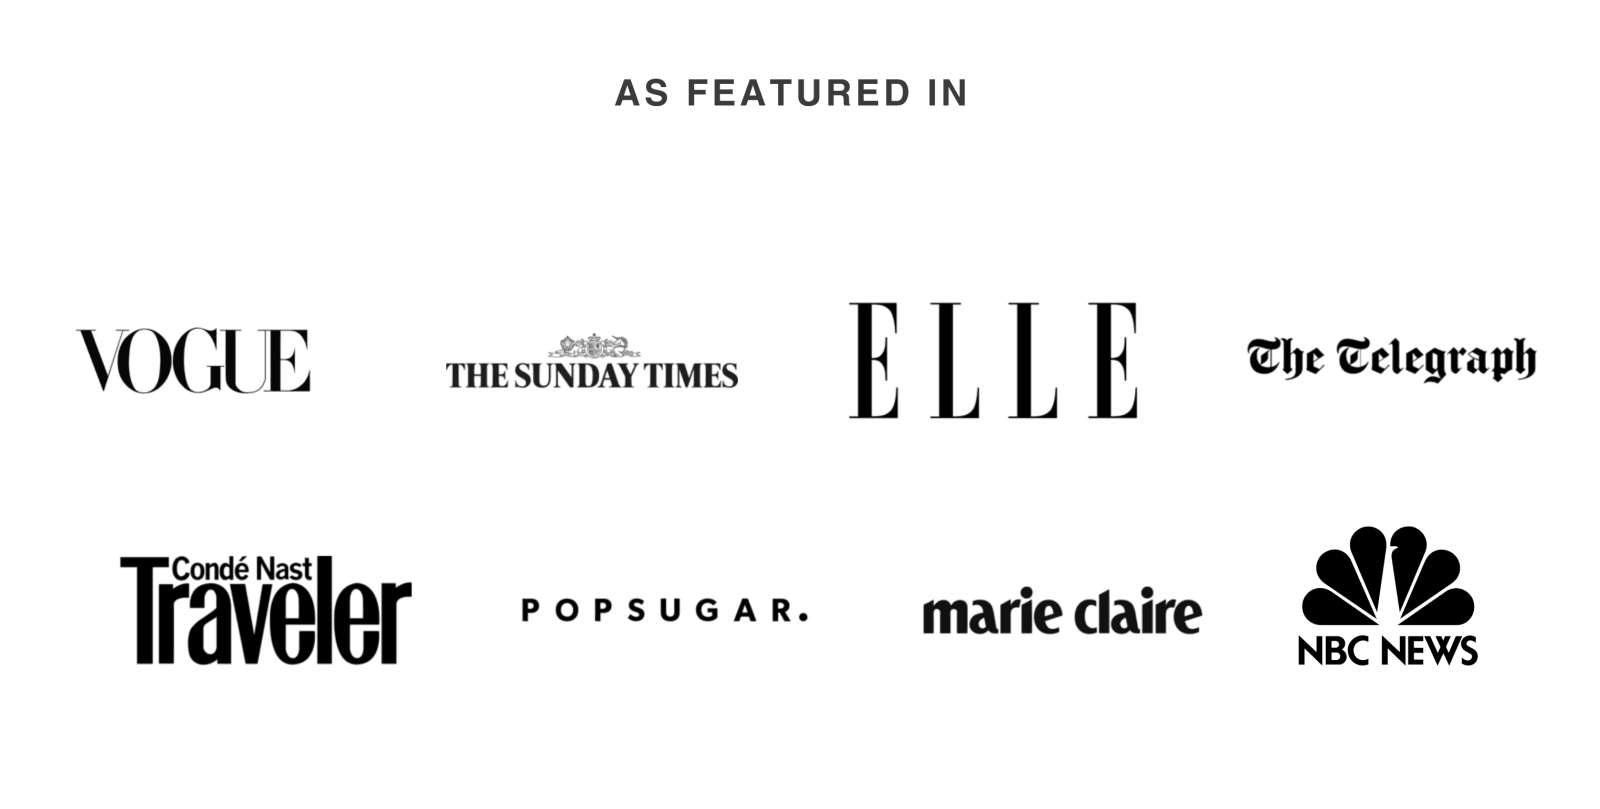 as featured in in VOGUE ELLE The Sunday Times marie claire The Telegraph popsugar Conde Nast Traveler NBC news